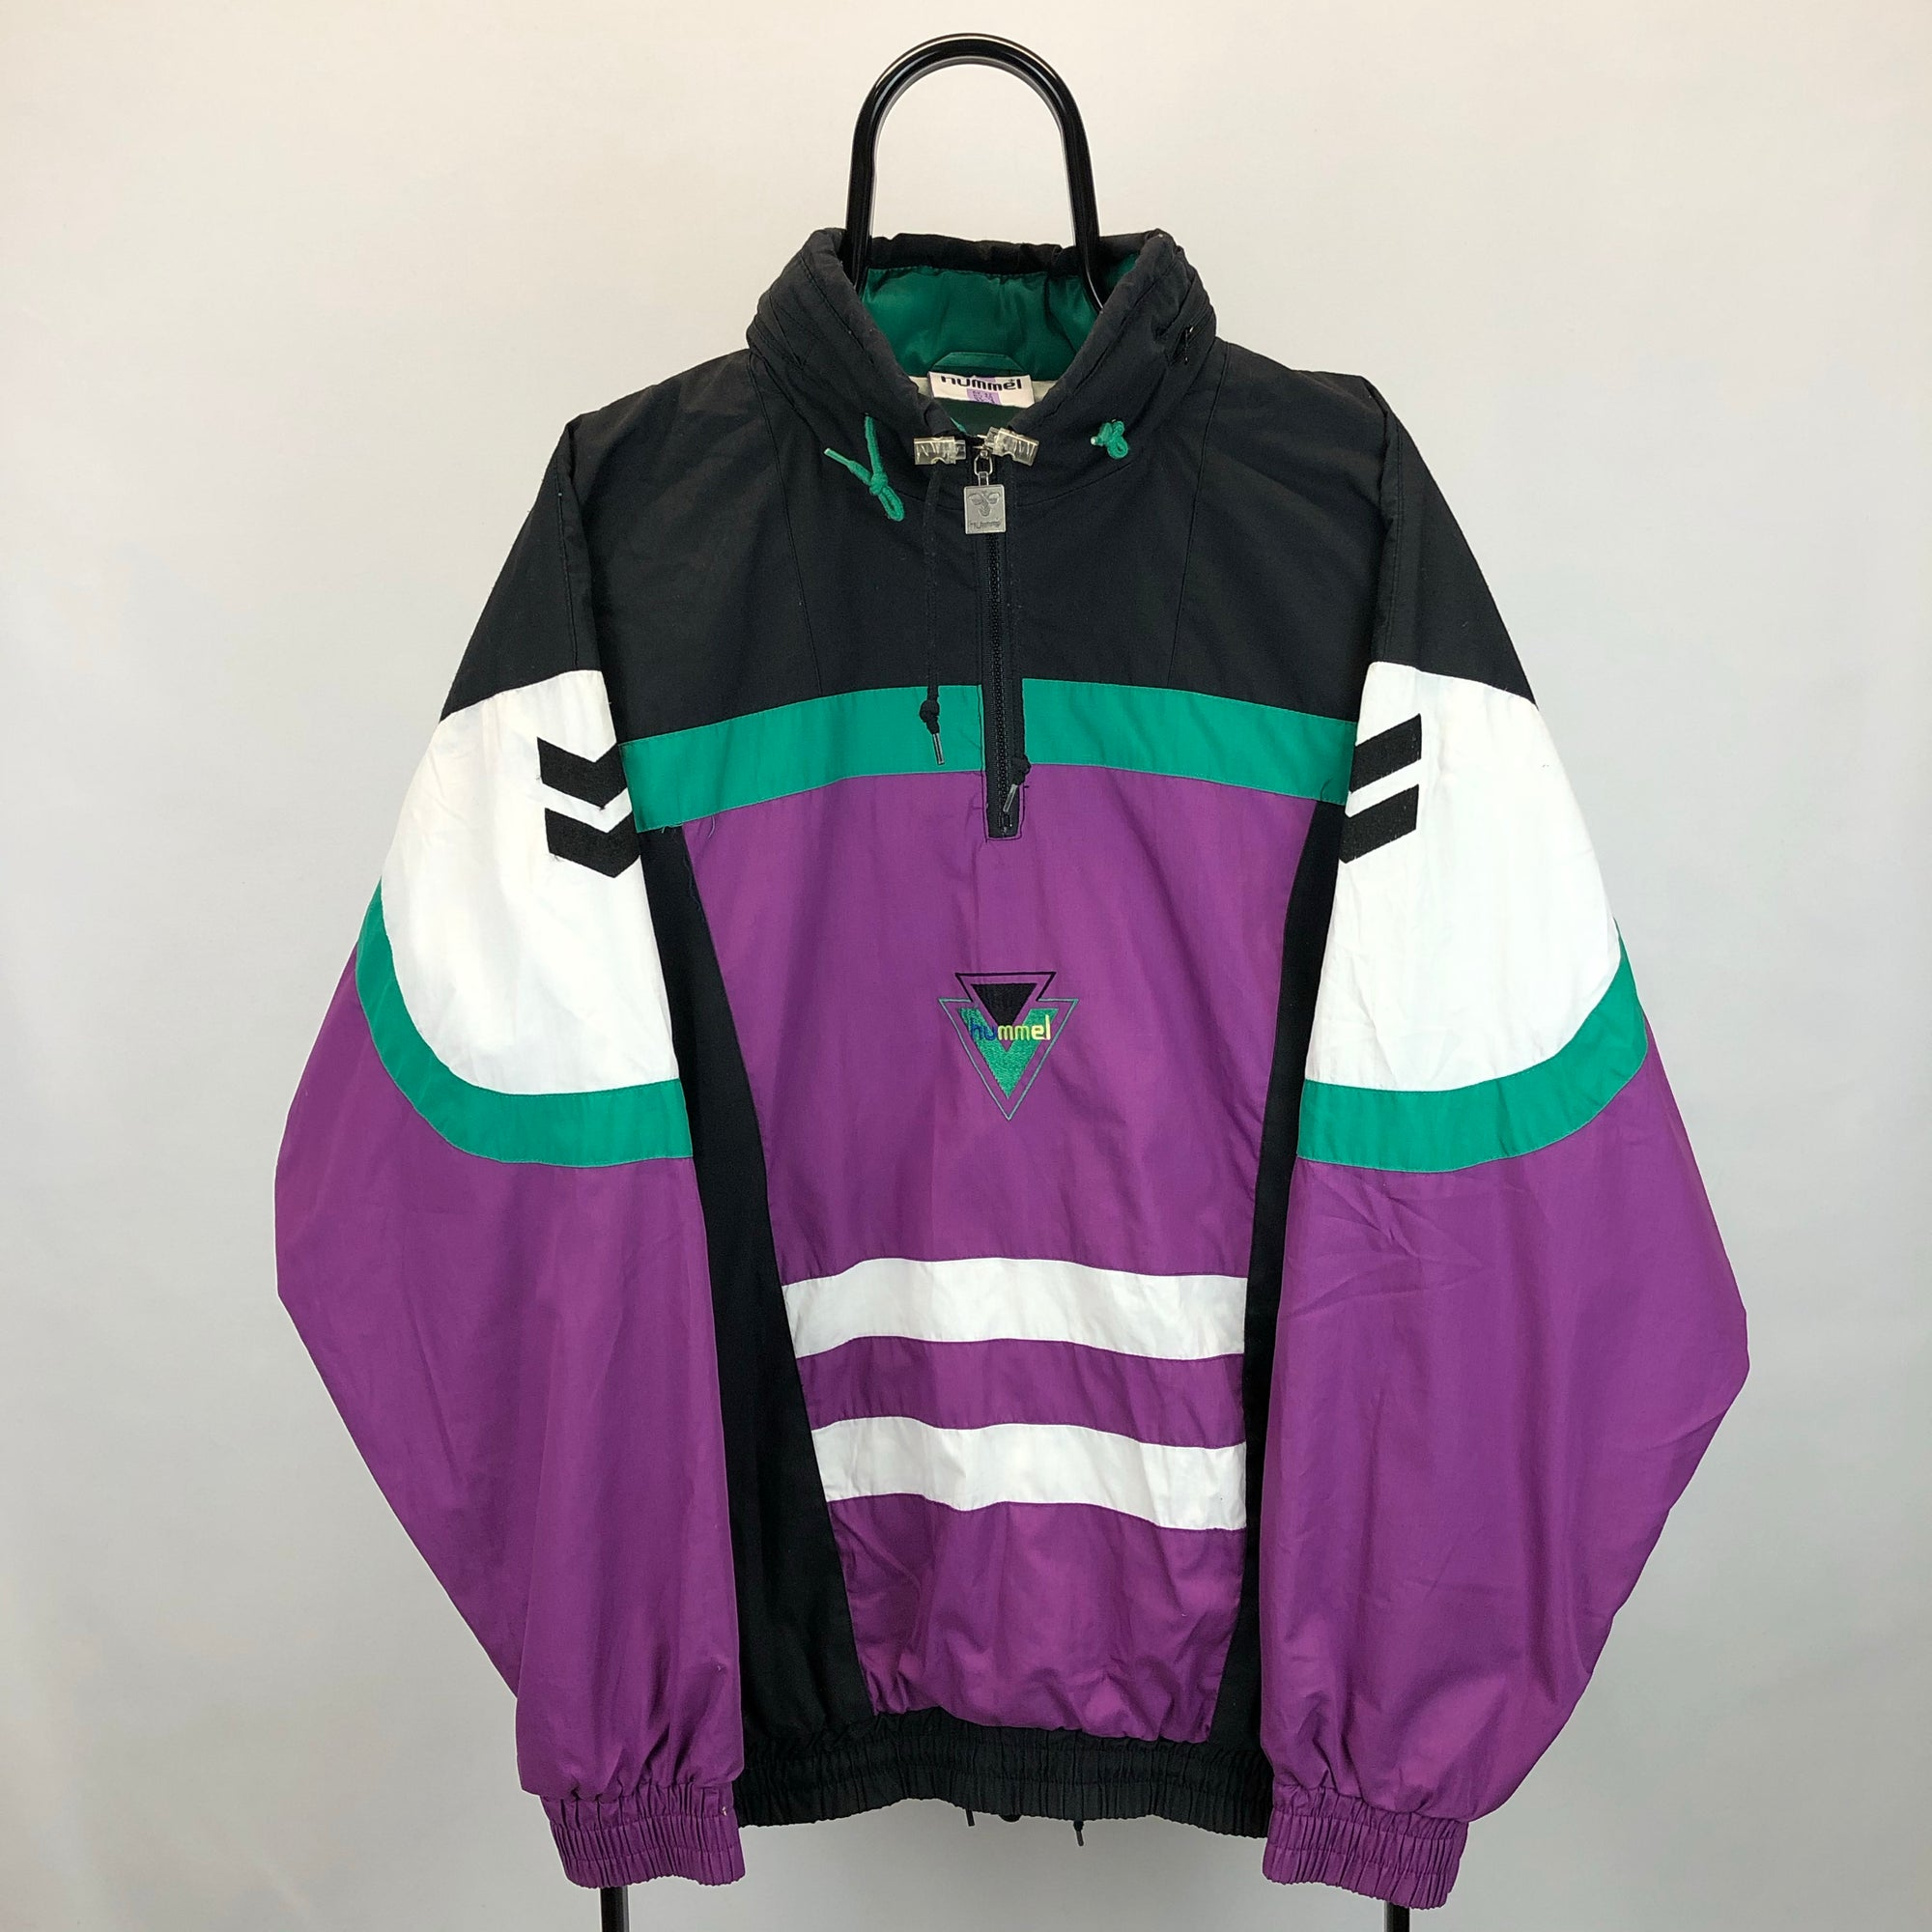 Vintage 90s Hummel 1/4 Zip Track Jacket - Men's Large/Women's XL